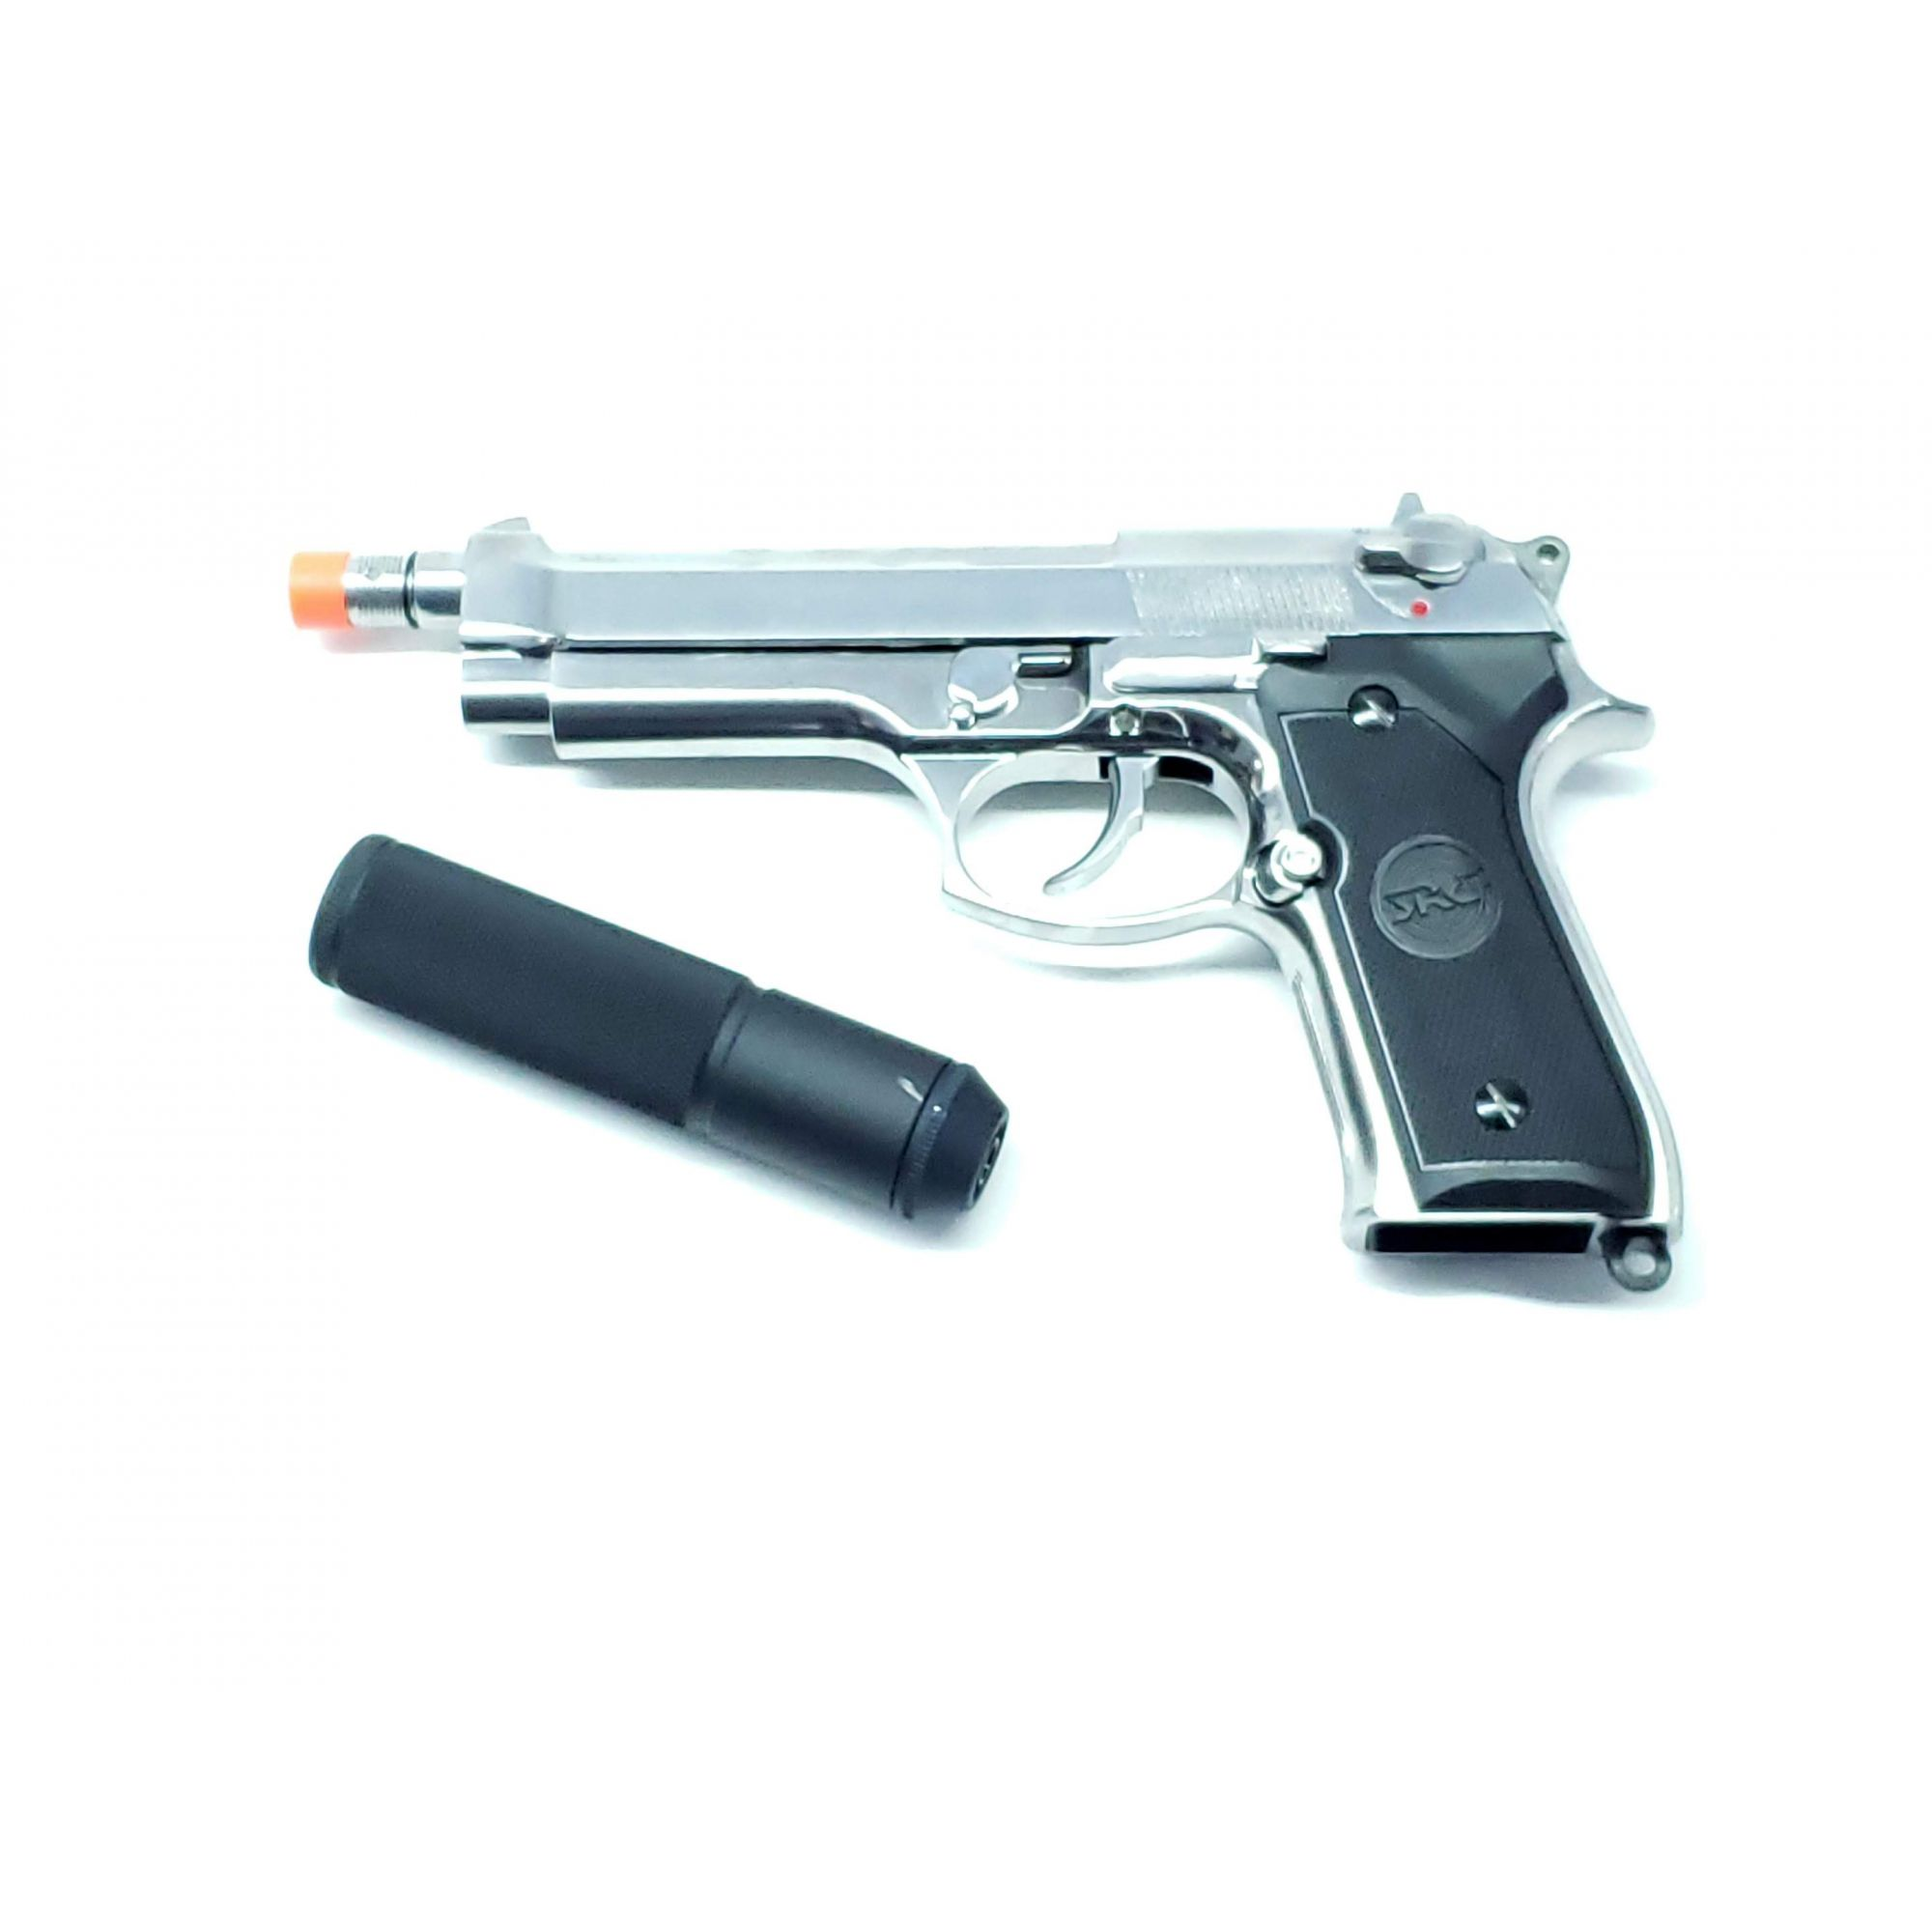 Pistola Airsoft SRC Sr92 Sp M92 Greengas